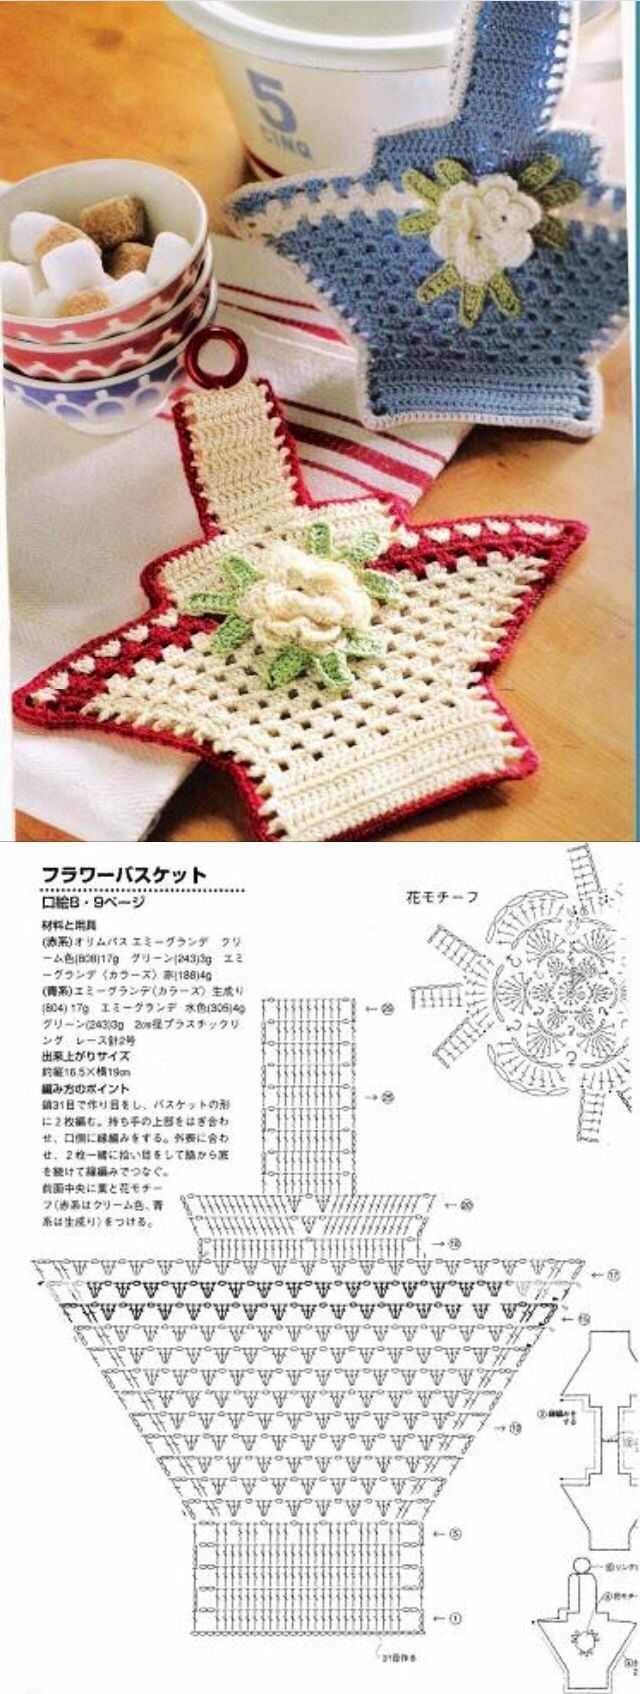 Vintage crochet kitchen basket potholder diagram pattern.